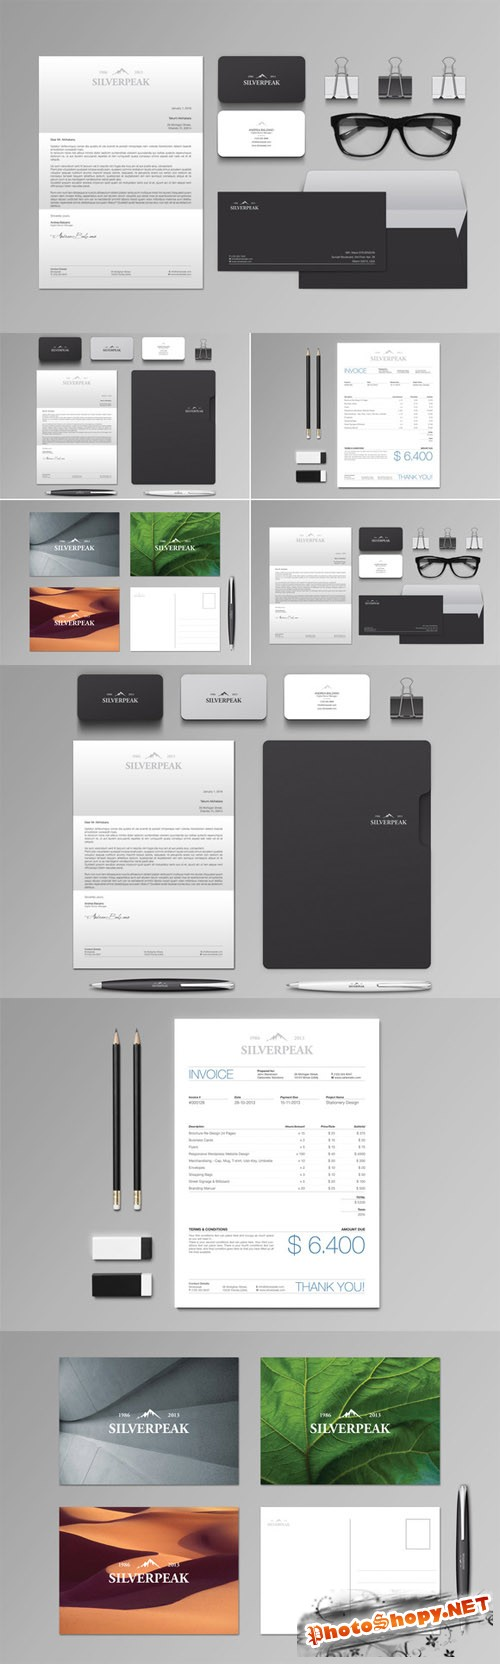 Silverpeak Stationery Set and Invoice